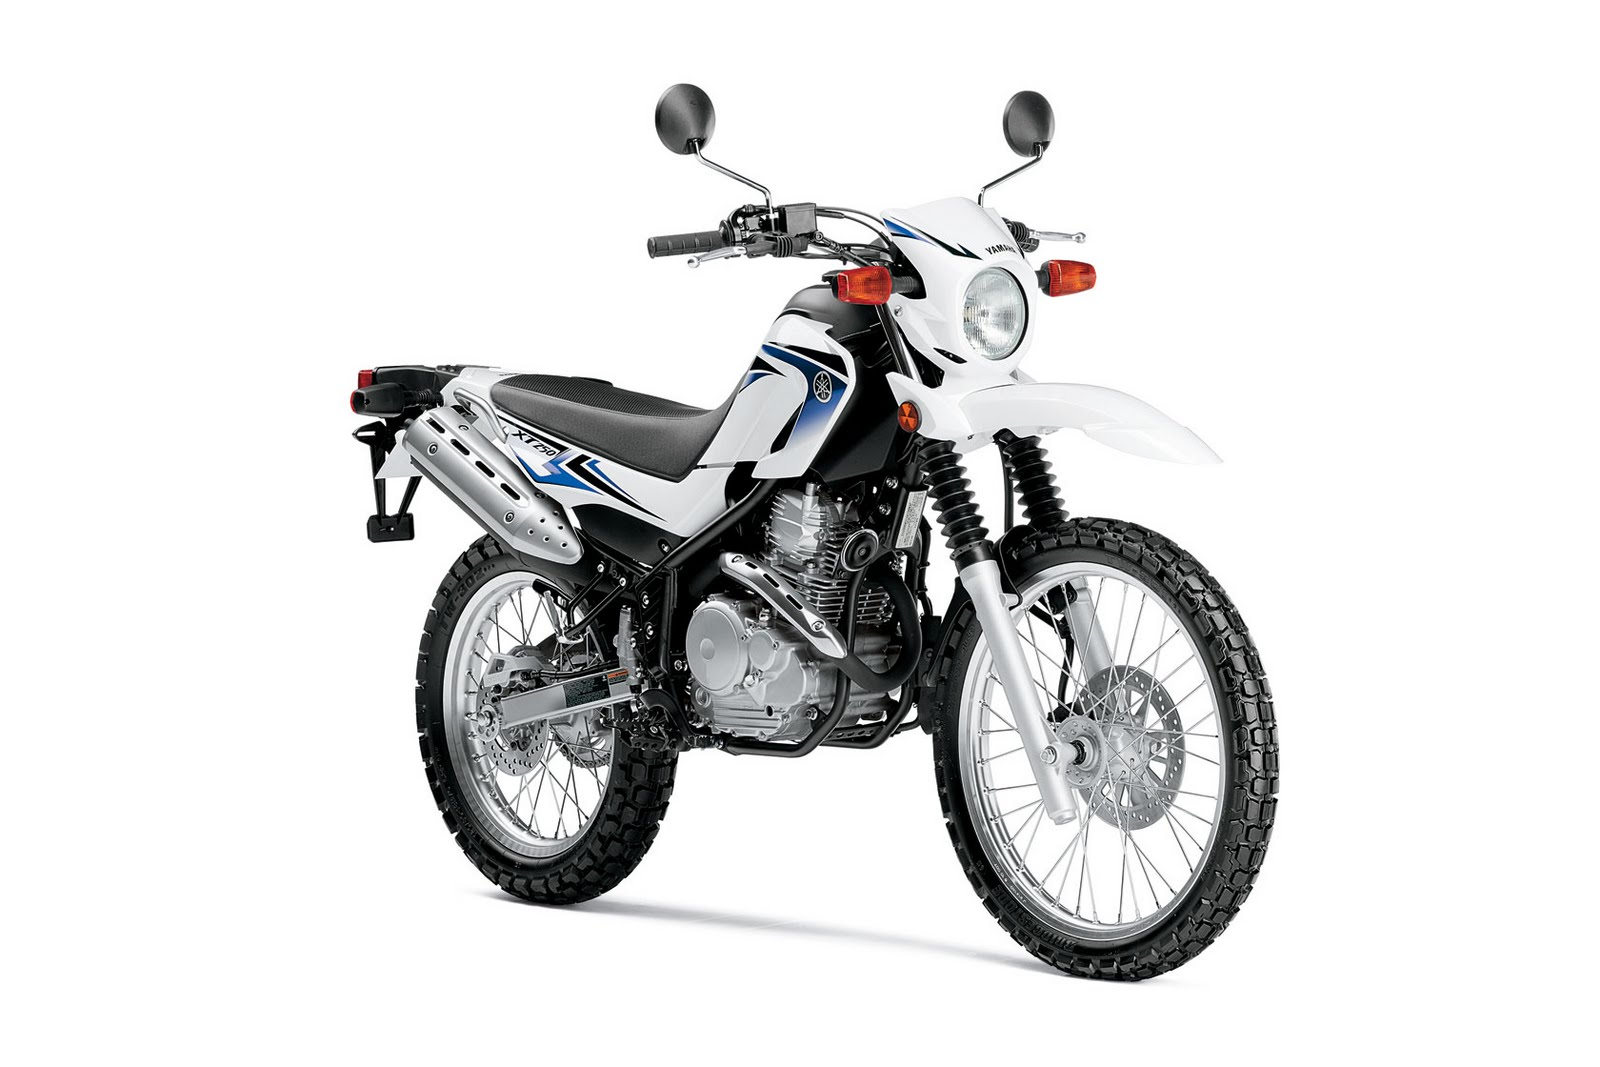 Yamaha Xt250 Specifications And Pictures Latest